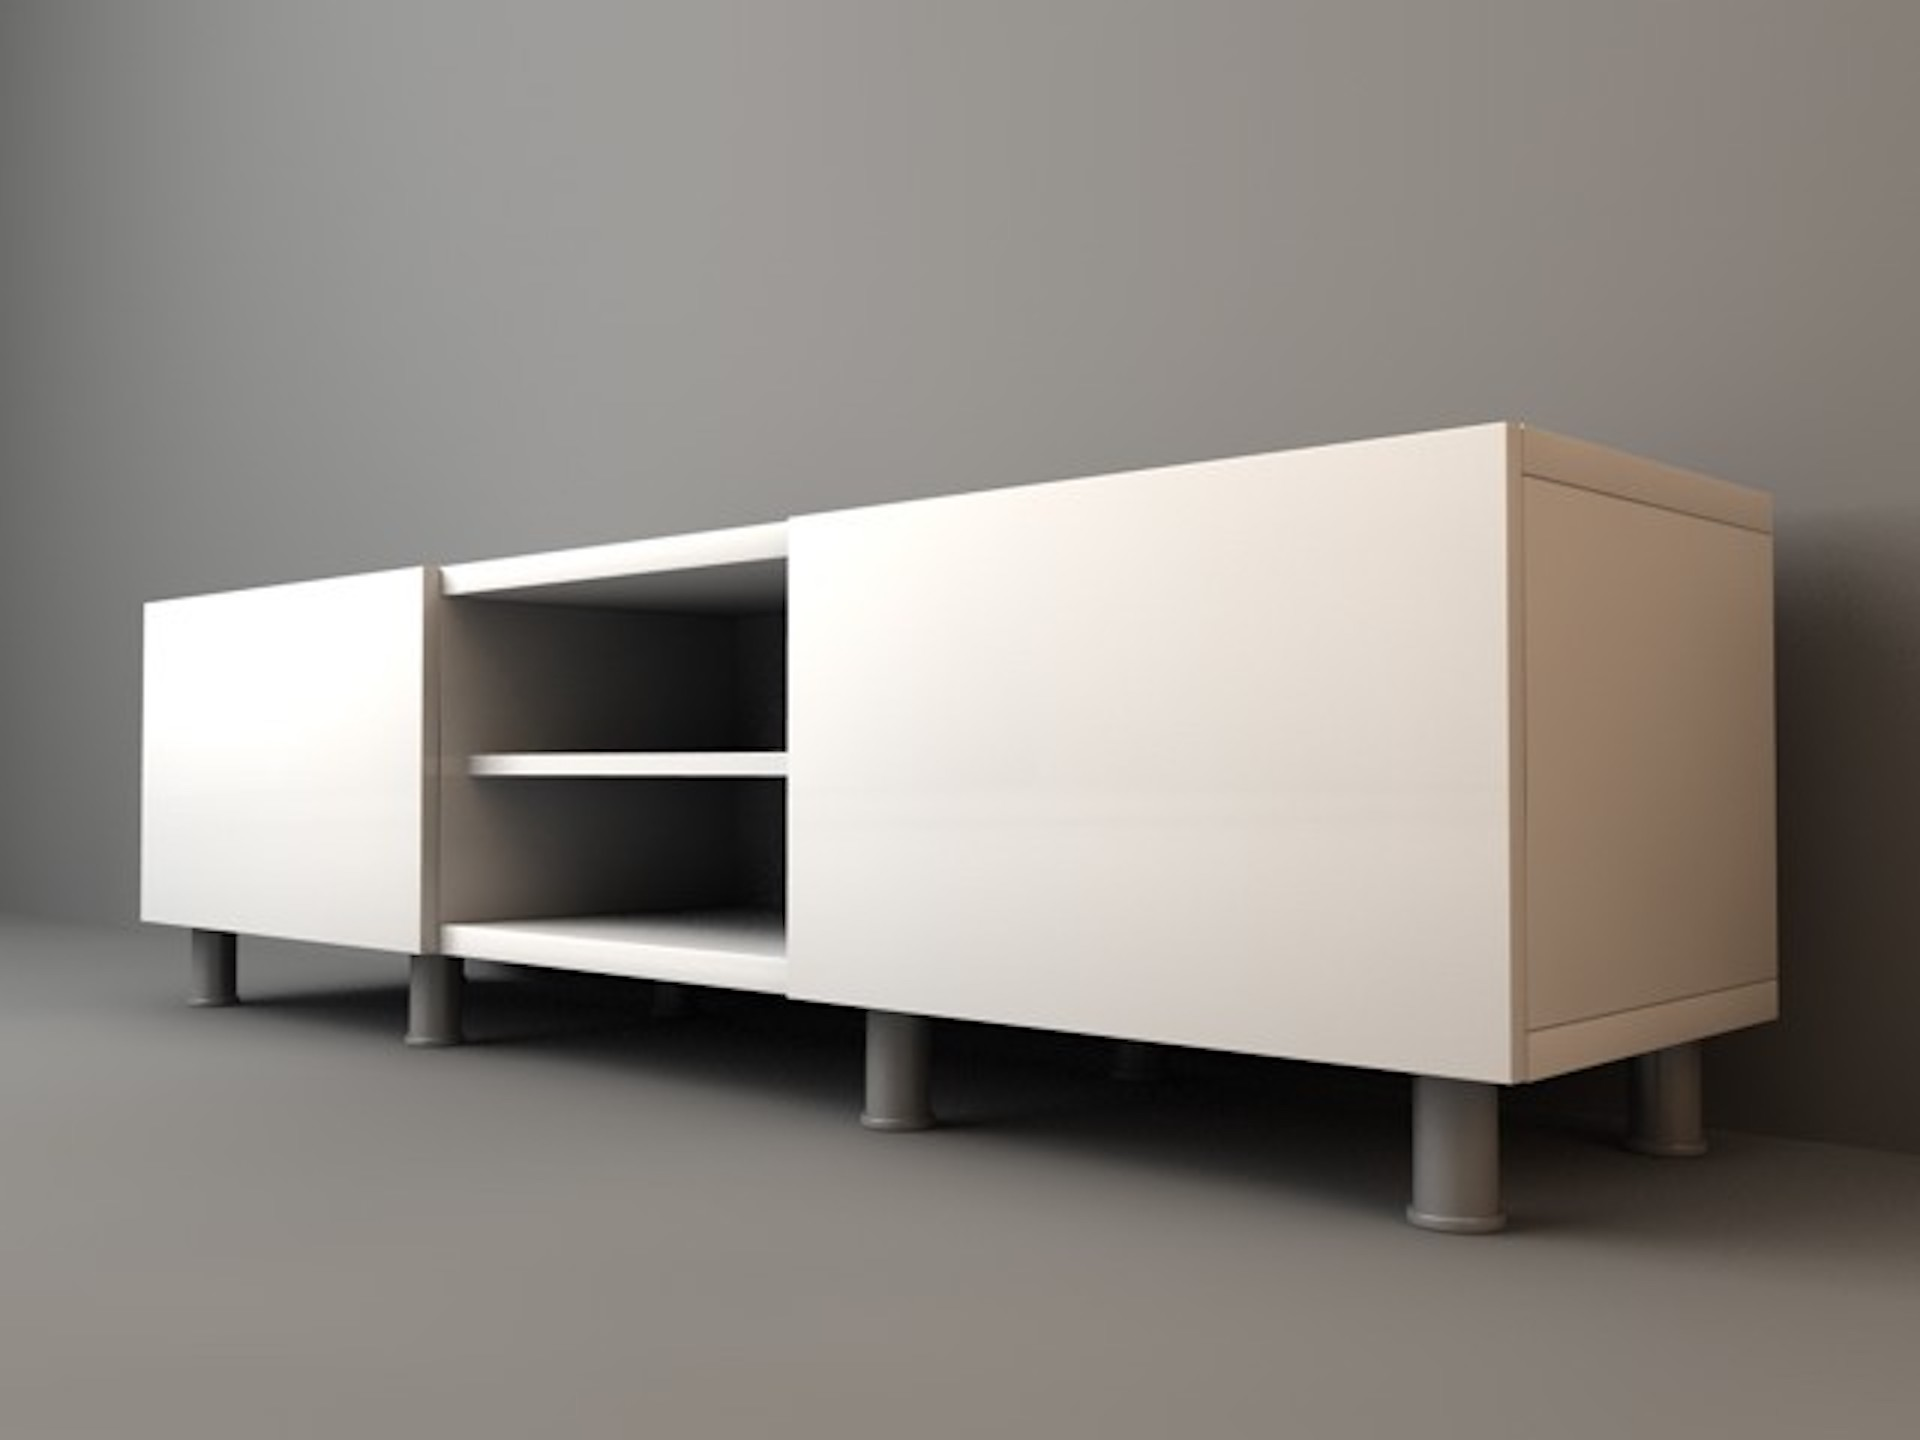 Porta tv modelli download c4dzone - Mobiletti porta tv ikea ...